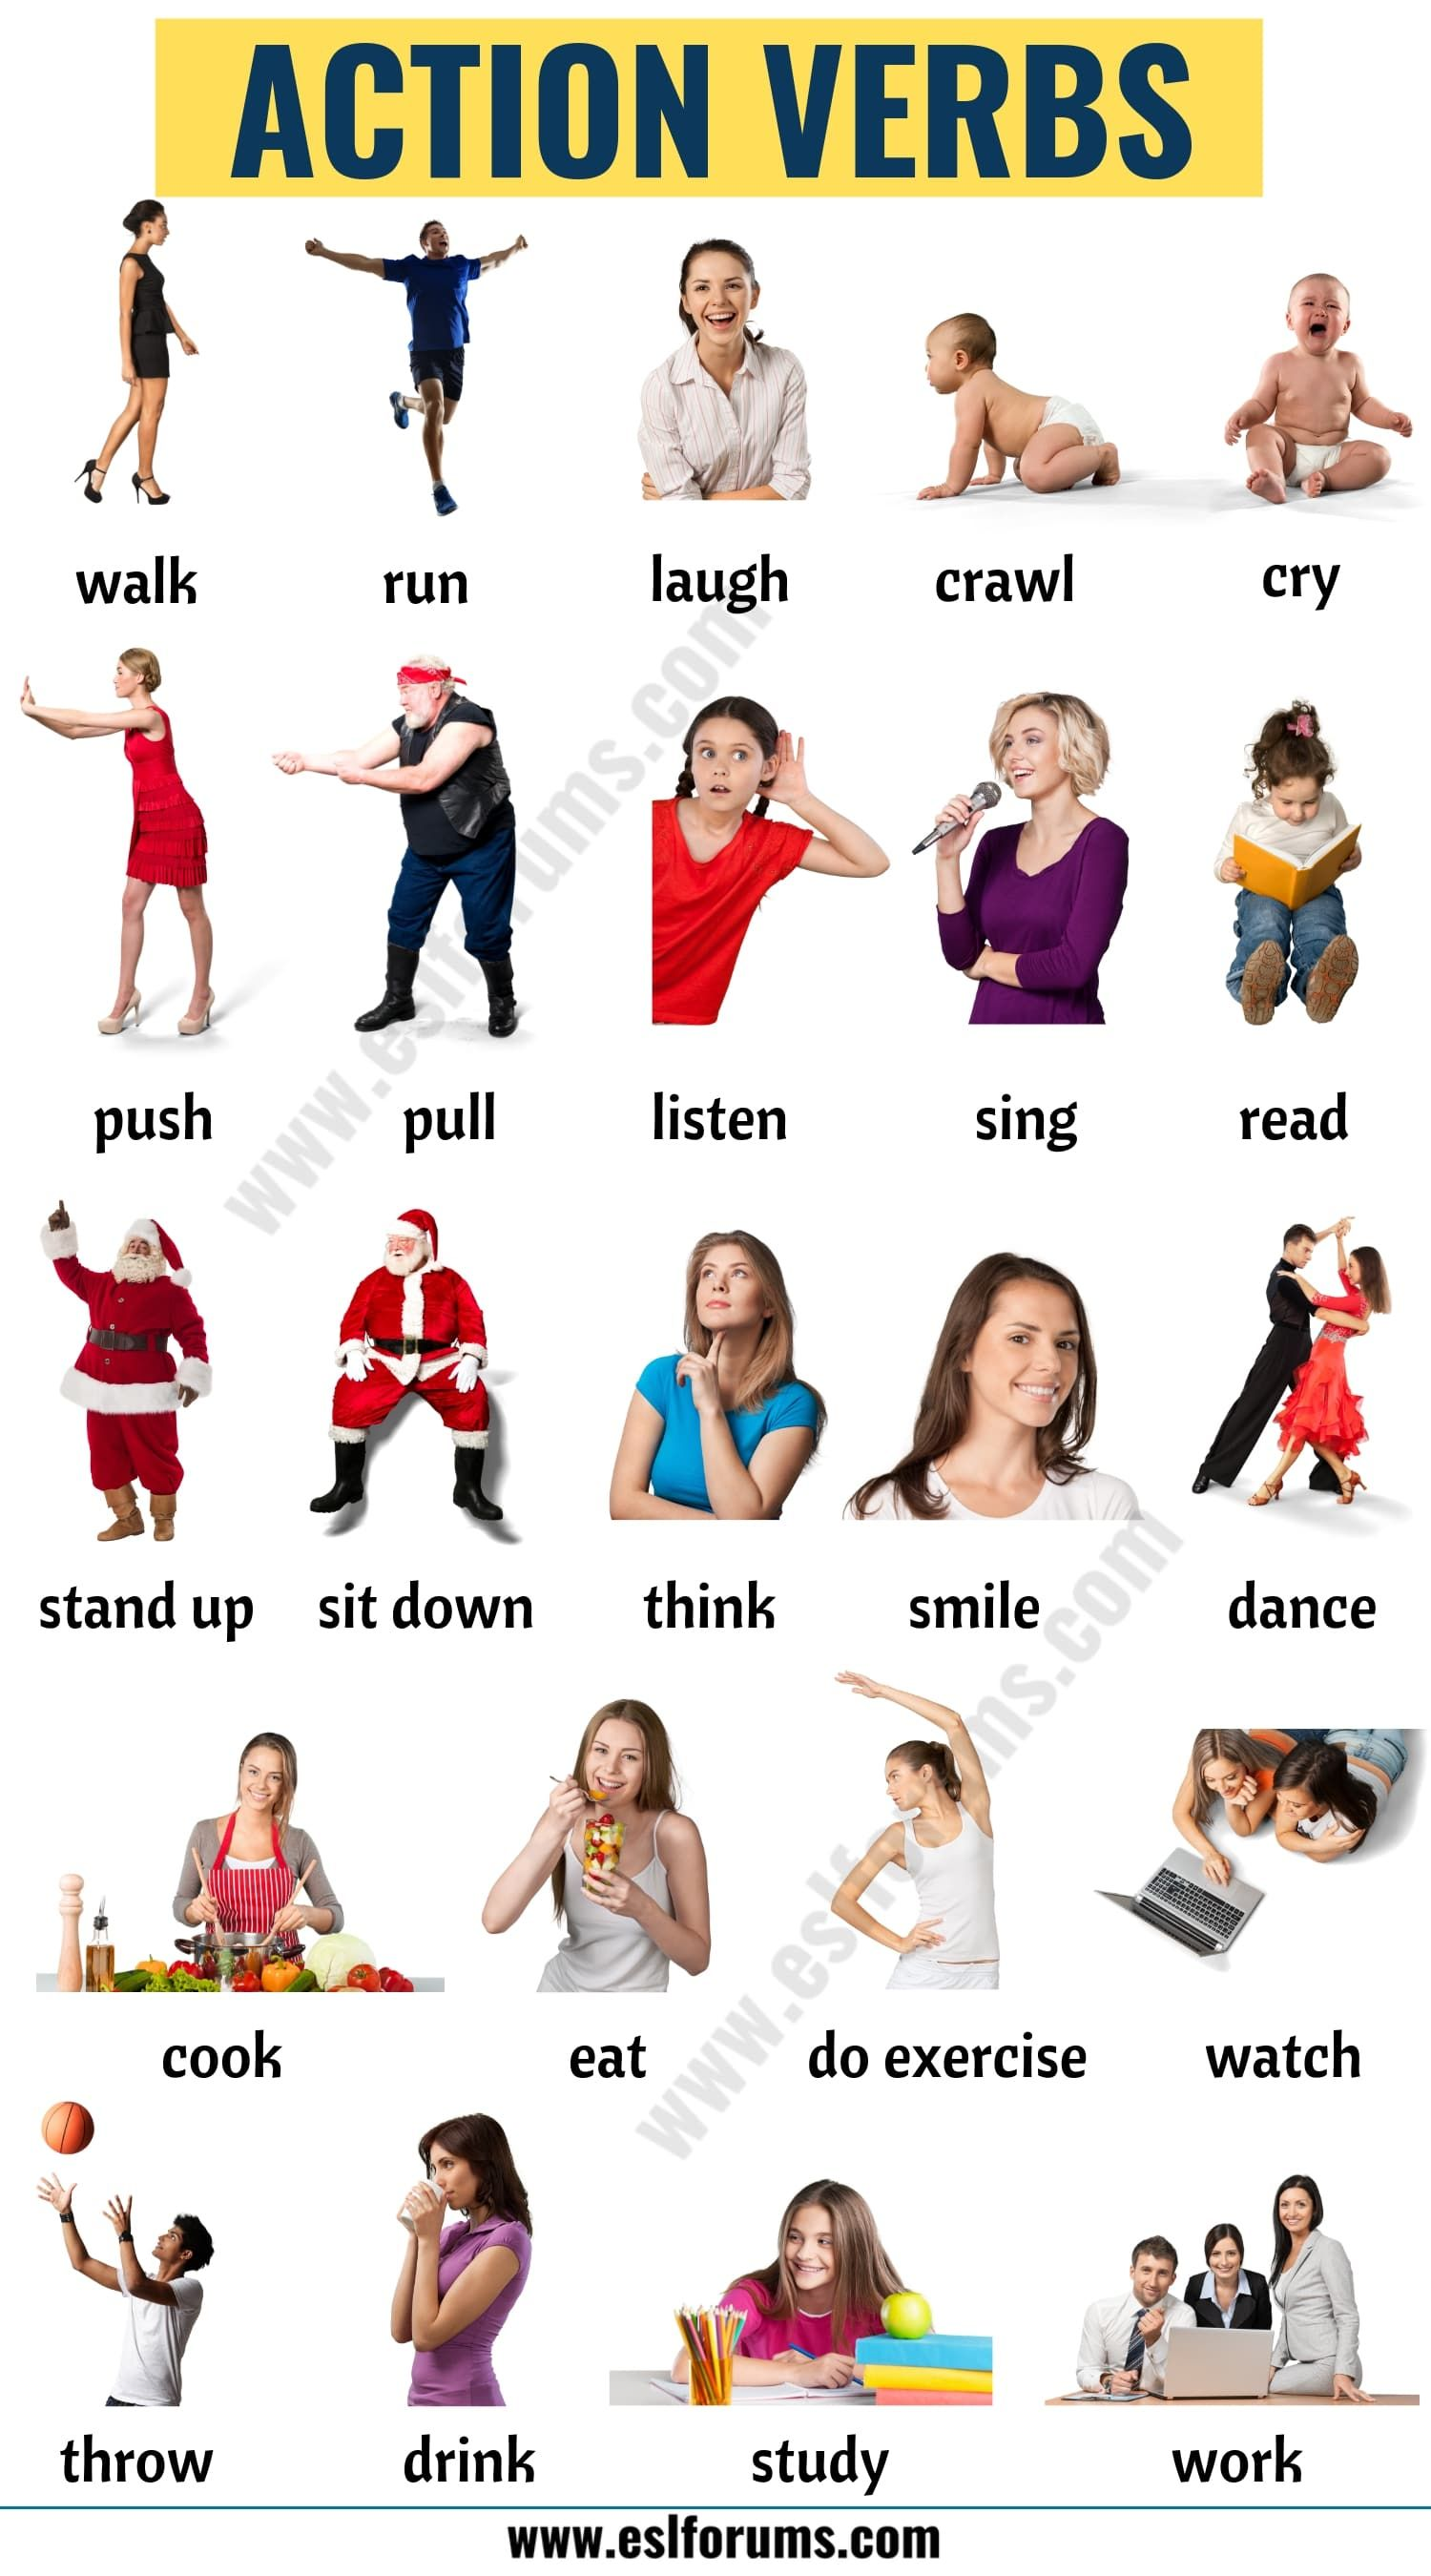 Action Verbs List Of 50 Useful Action Words With The Pictures